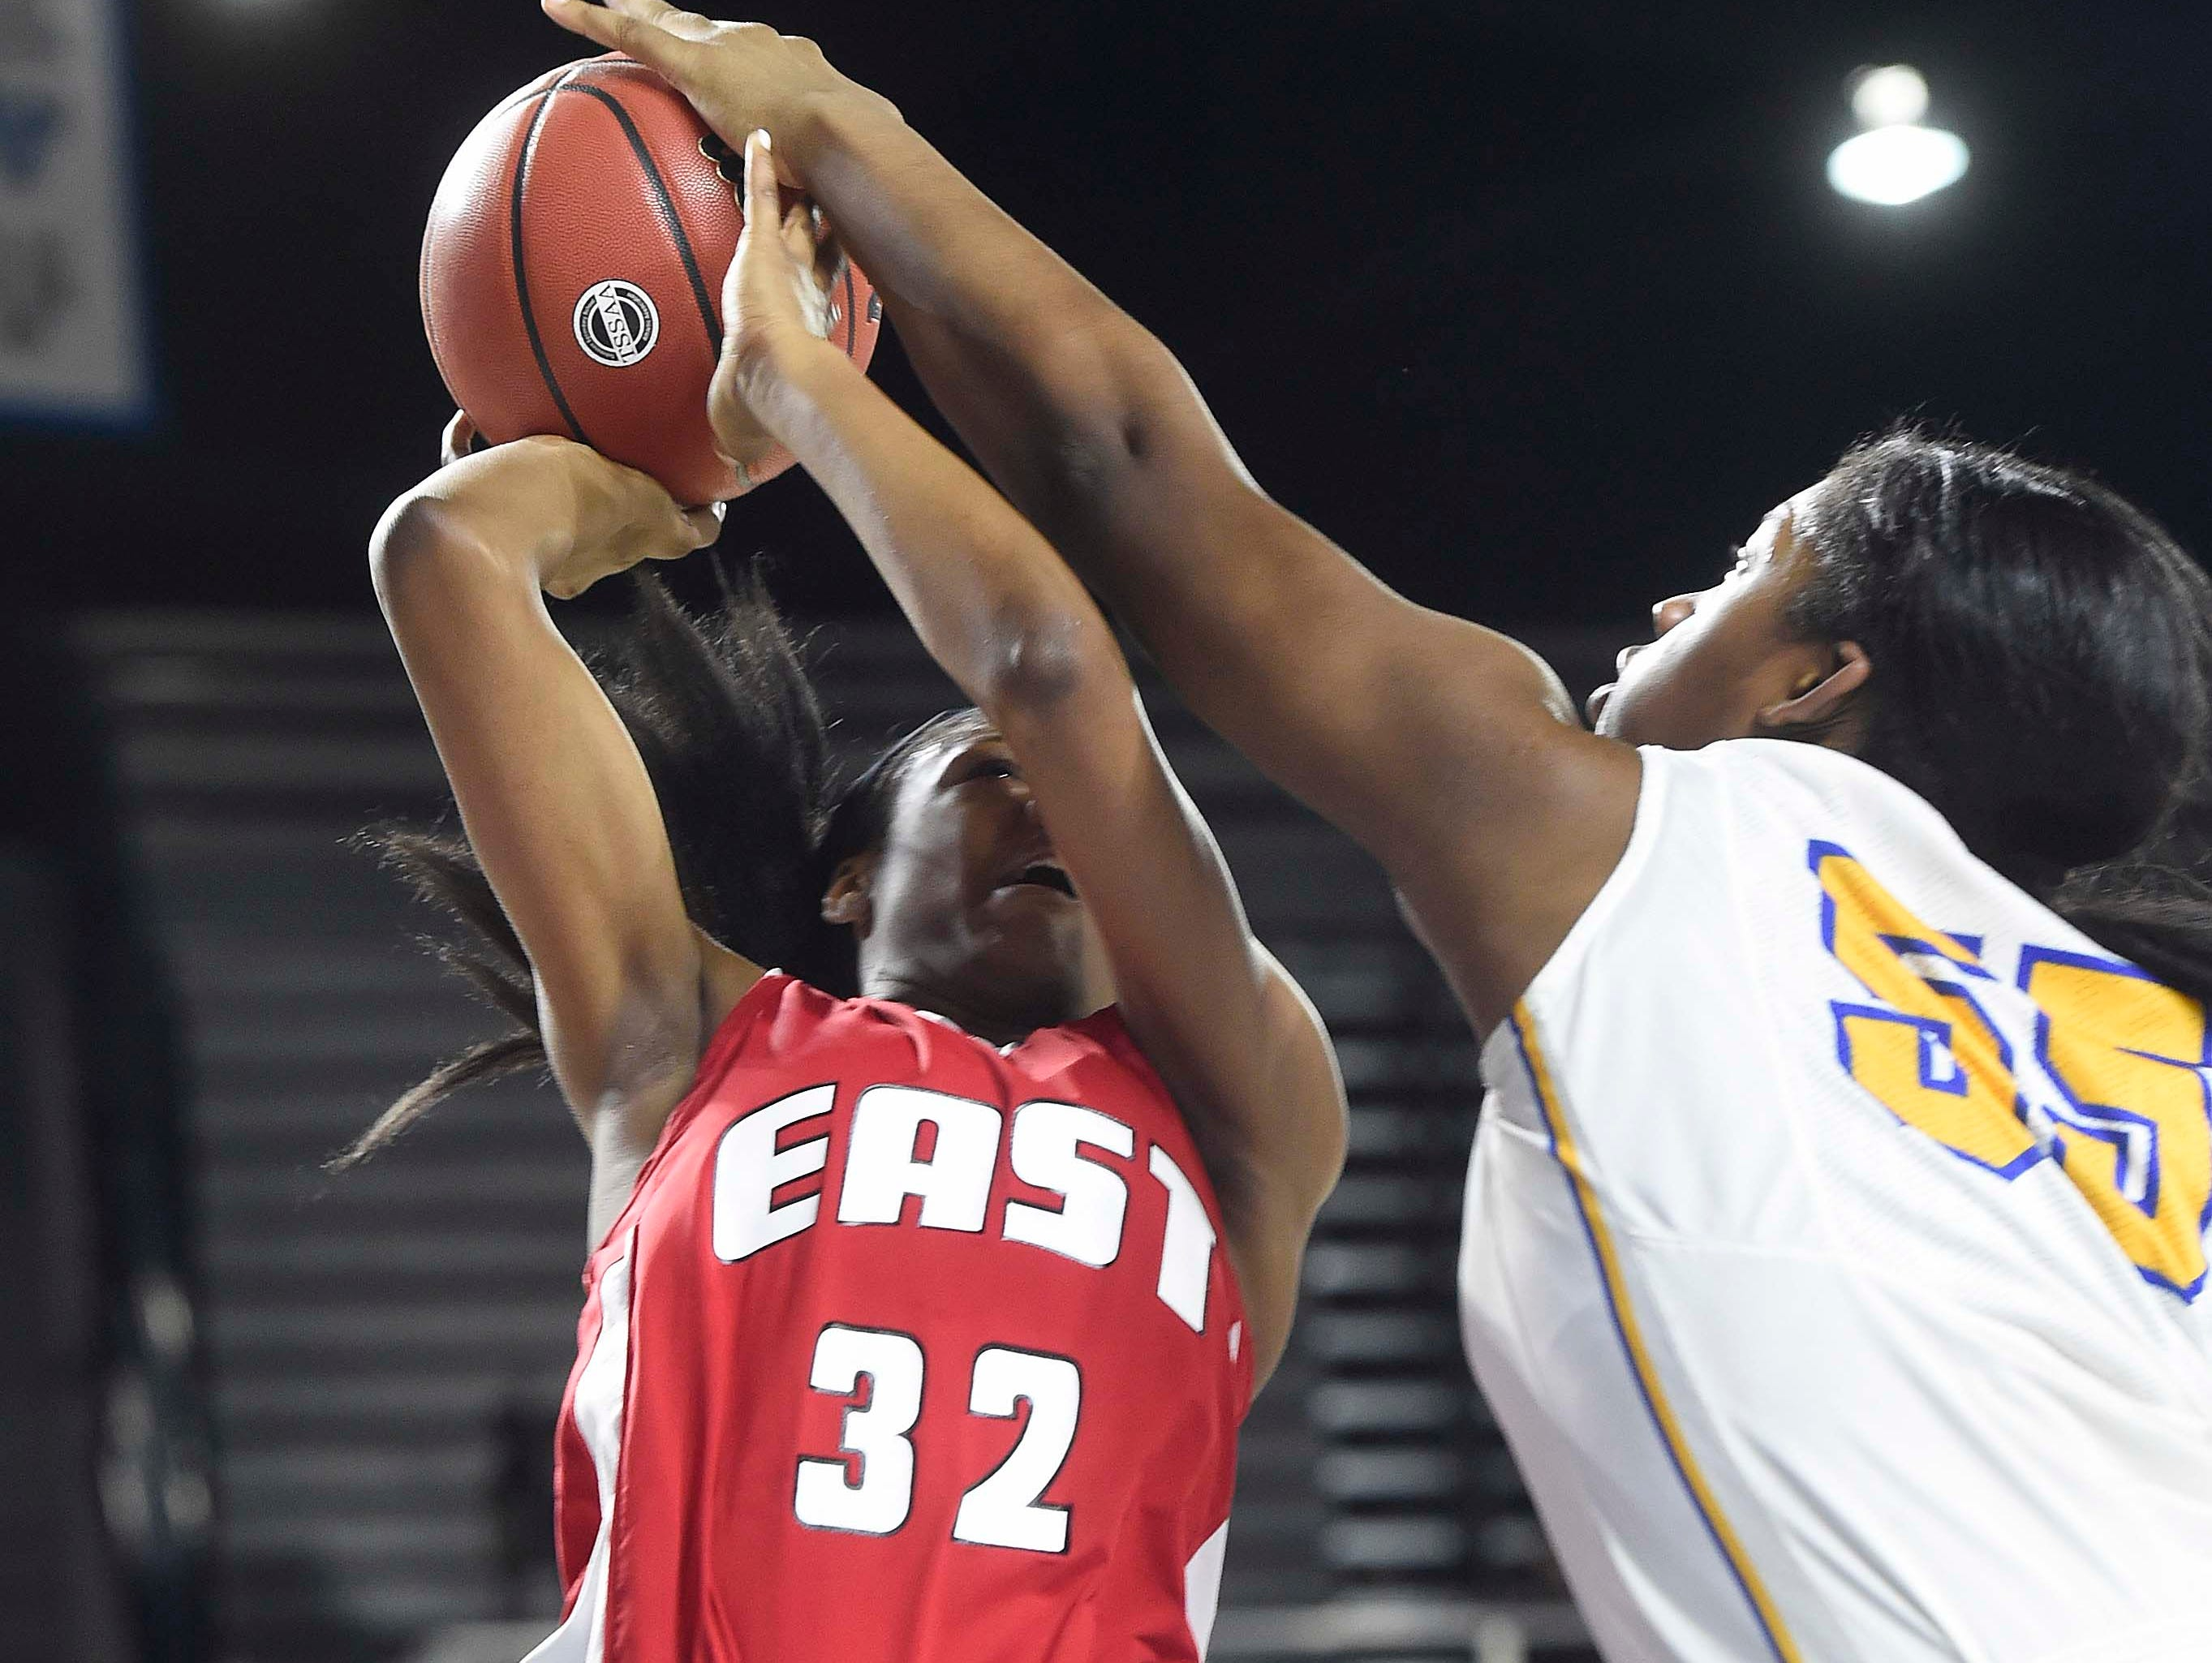 East's Quentarra Mitchell (32) is blocked by Westview's Deja Grraves (55) as Westview High School leads 17-13 East Nashville at the half in the Division I Class AA Girl's basketball semi-finals at the Murphy Center on MTSU's campus March 11, 2016 in Murfreesboro, Tenn.